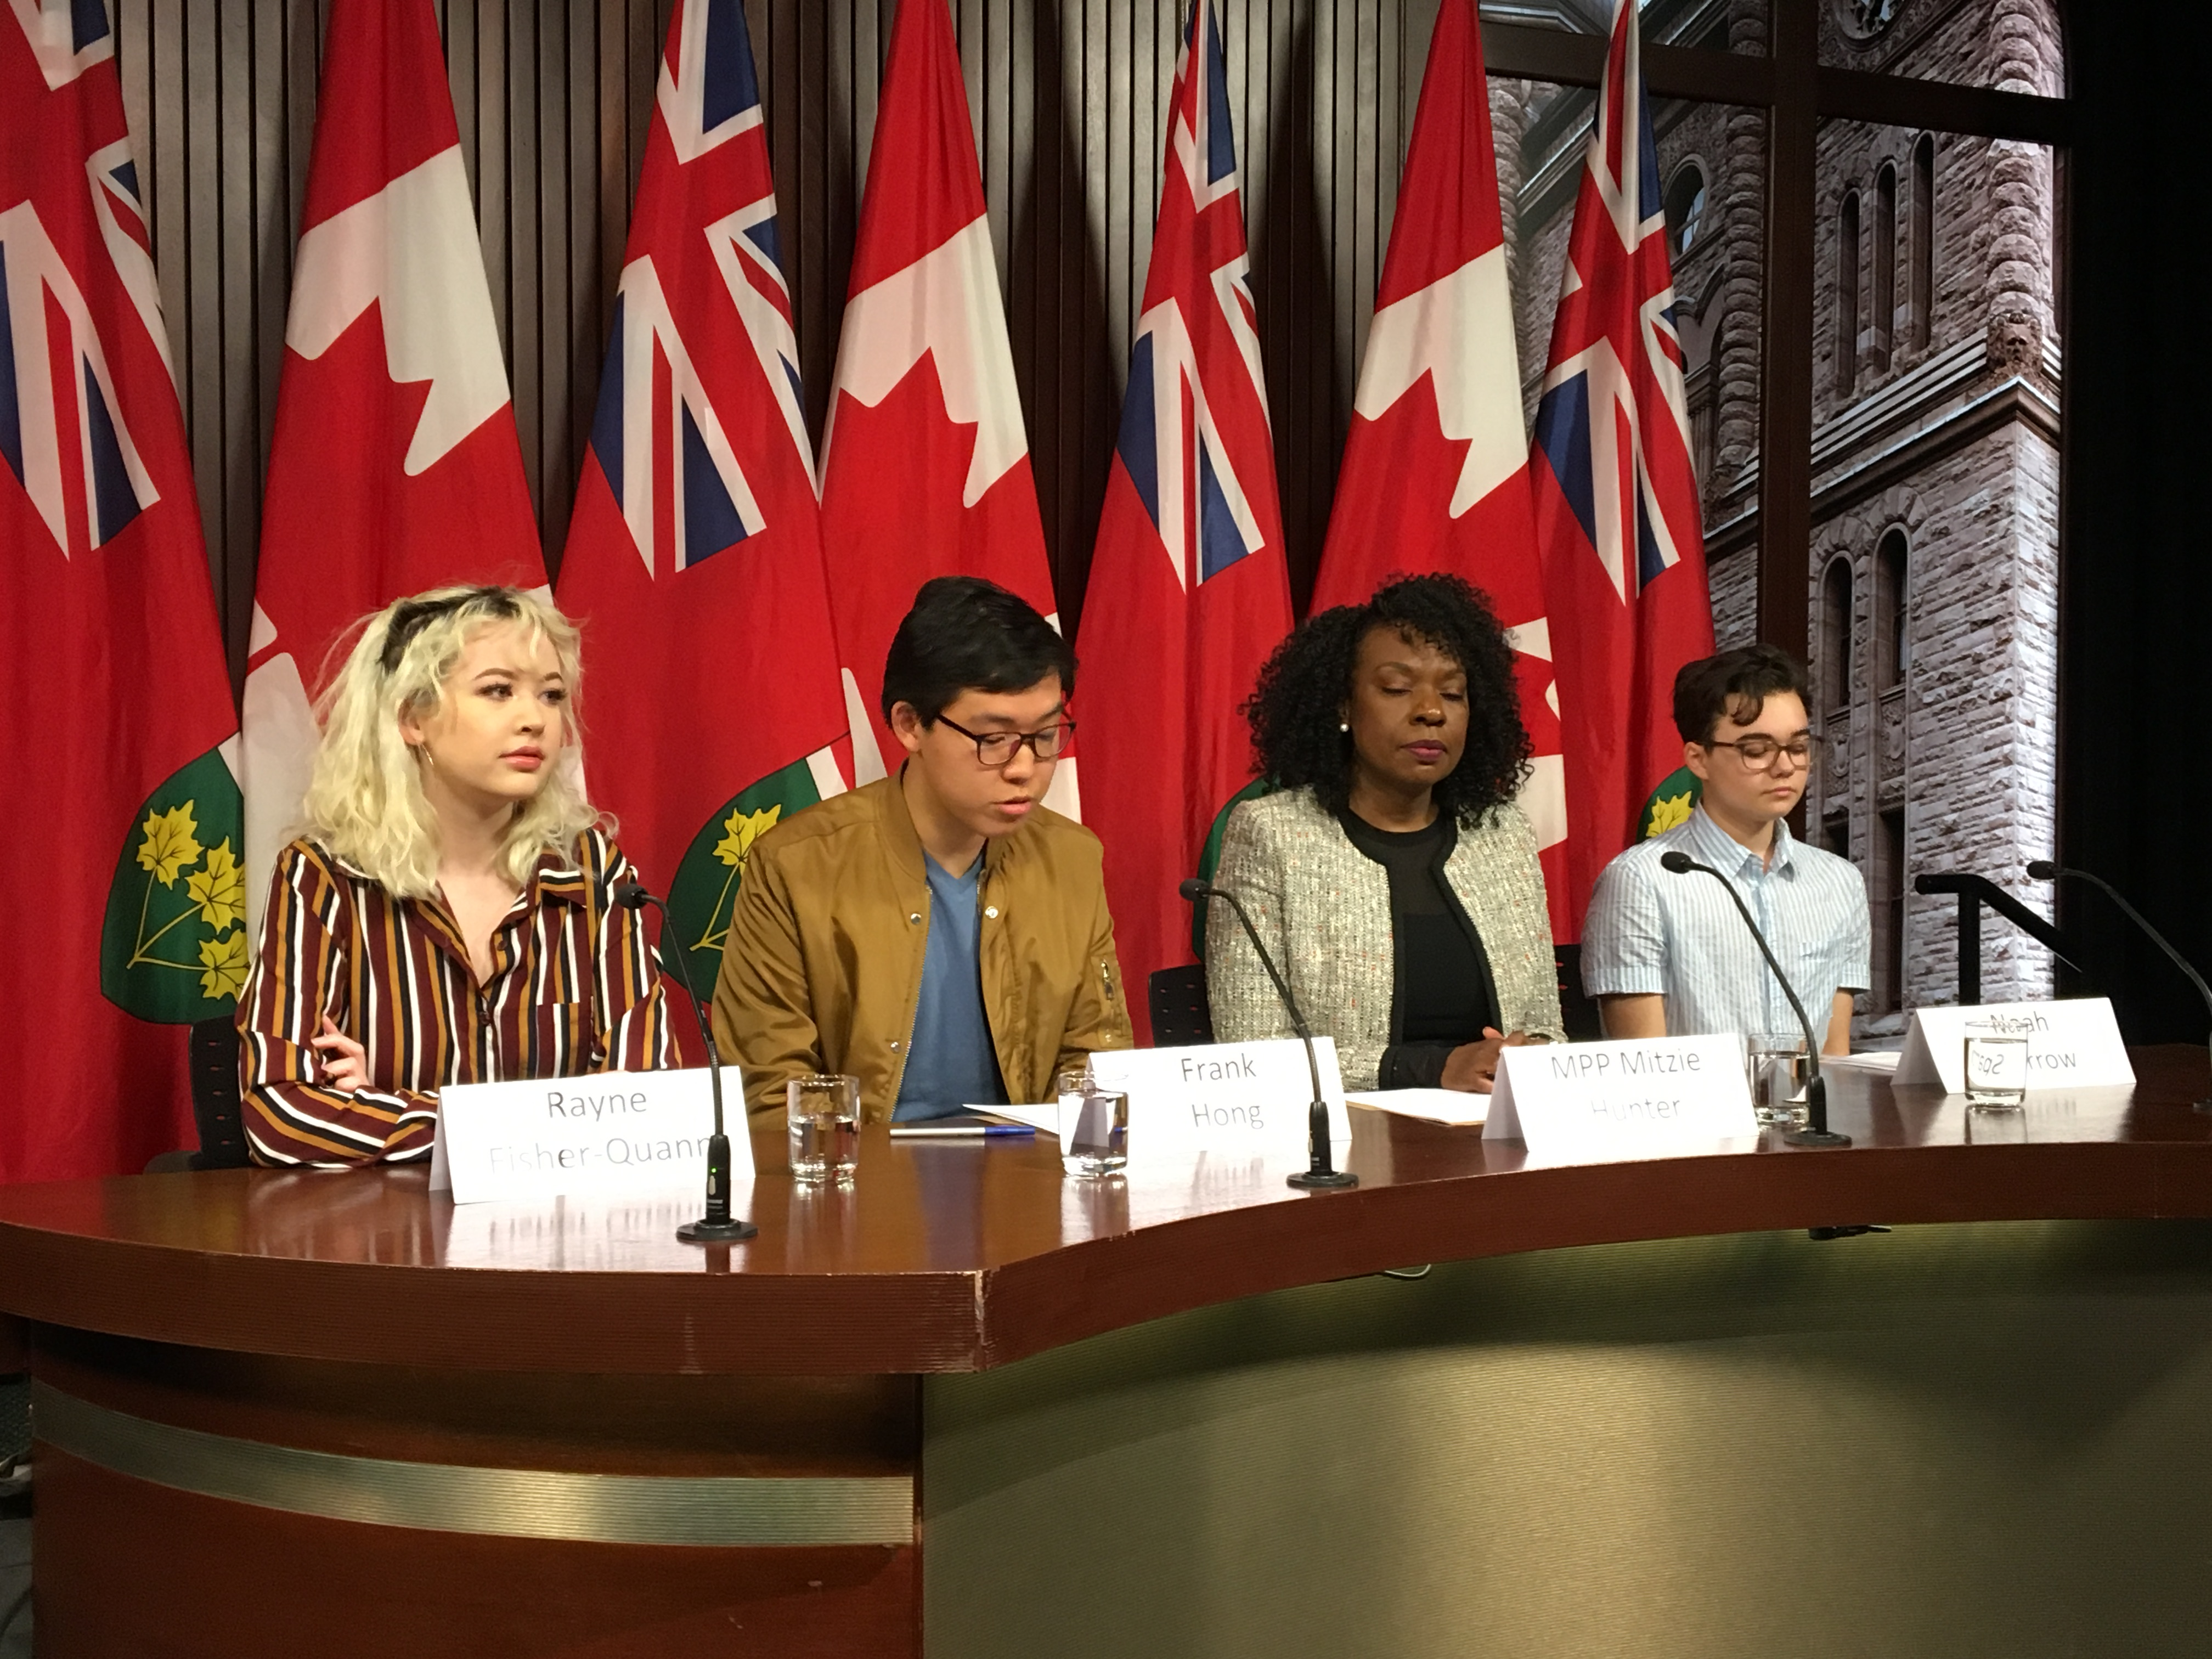 Premier is 'incredible at getting us mad and getting us active,' student organizing mass walkout says